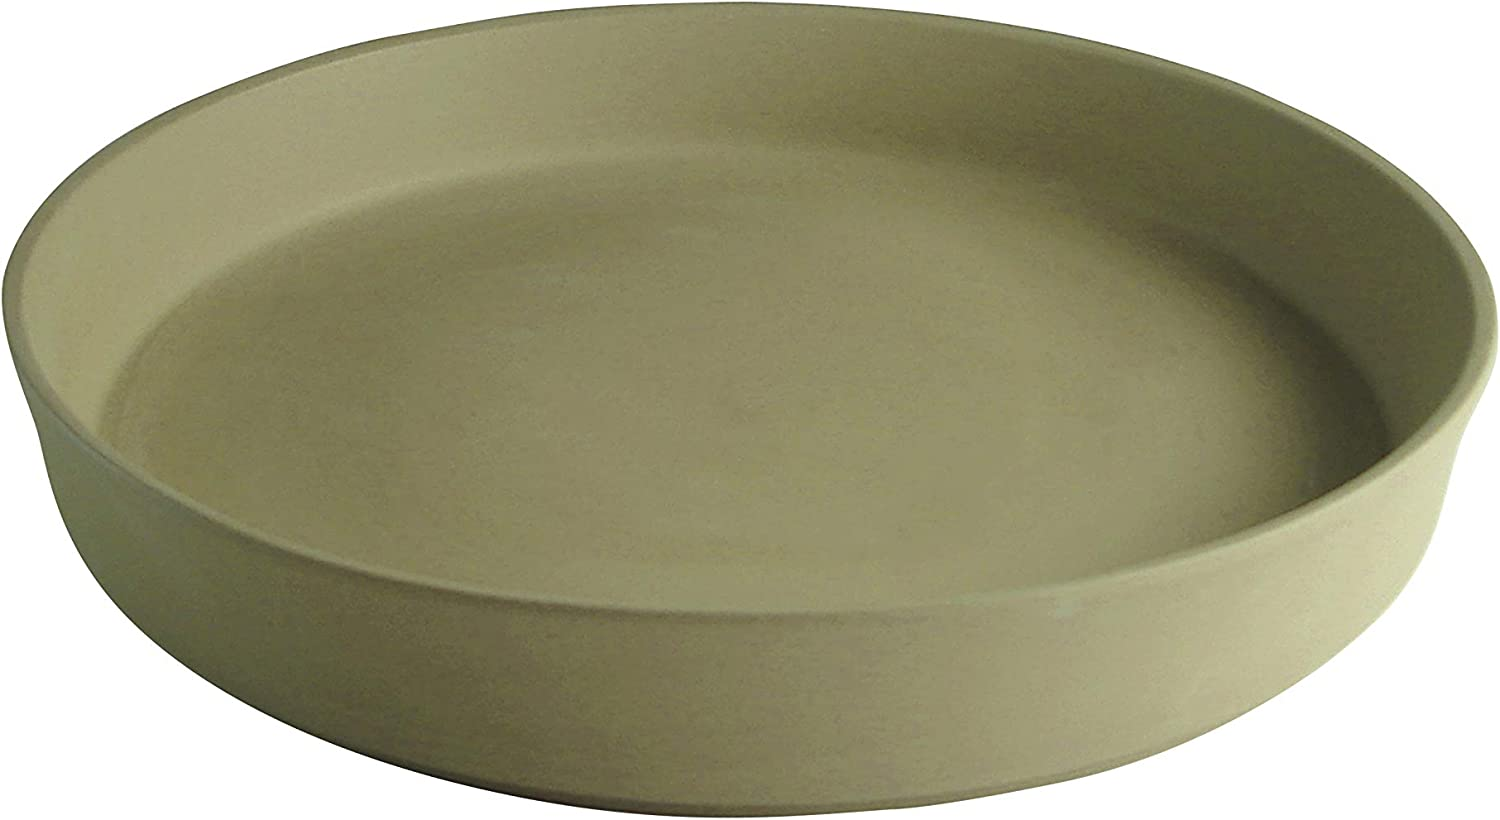 Multi Chef Deep Dish Stone Pizza Baker - Enjoy Perfect Deep Dish Pizza Crust & Bake Amazing Pies with this Pie & Pizza Stone Baking Dish